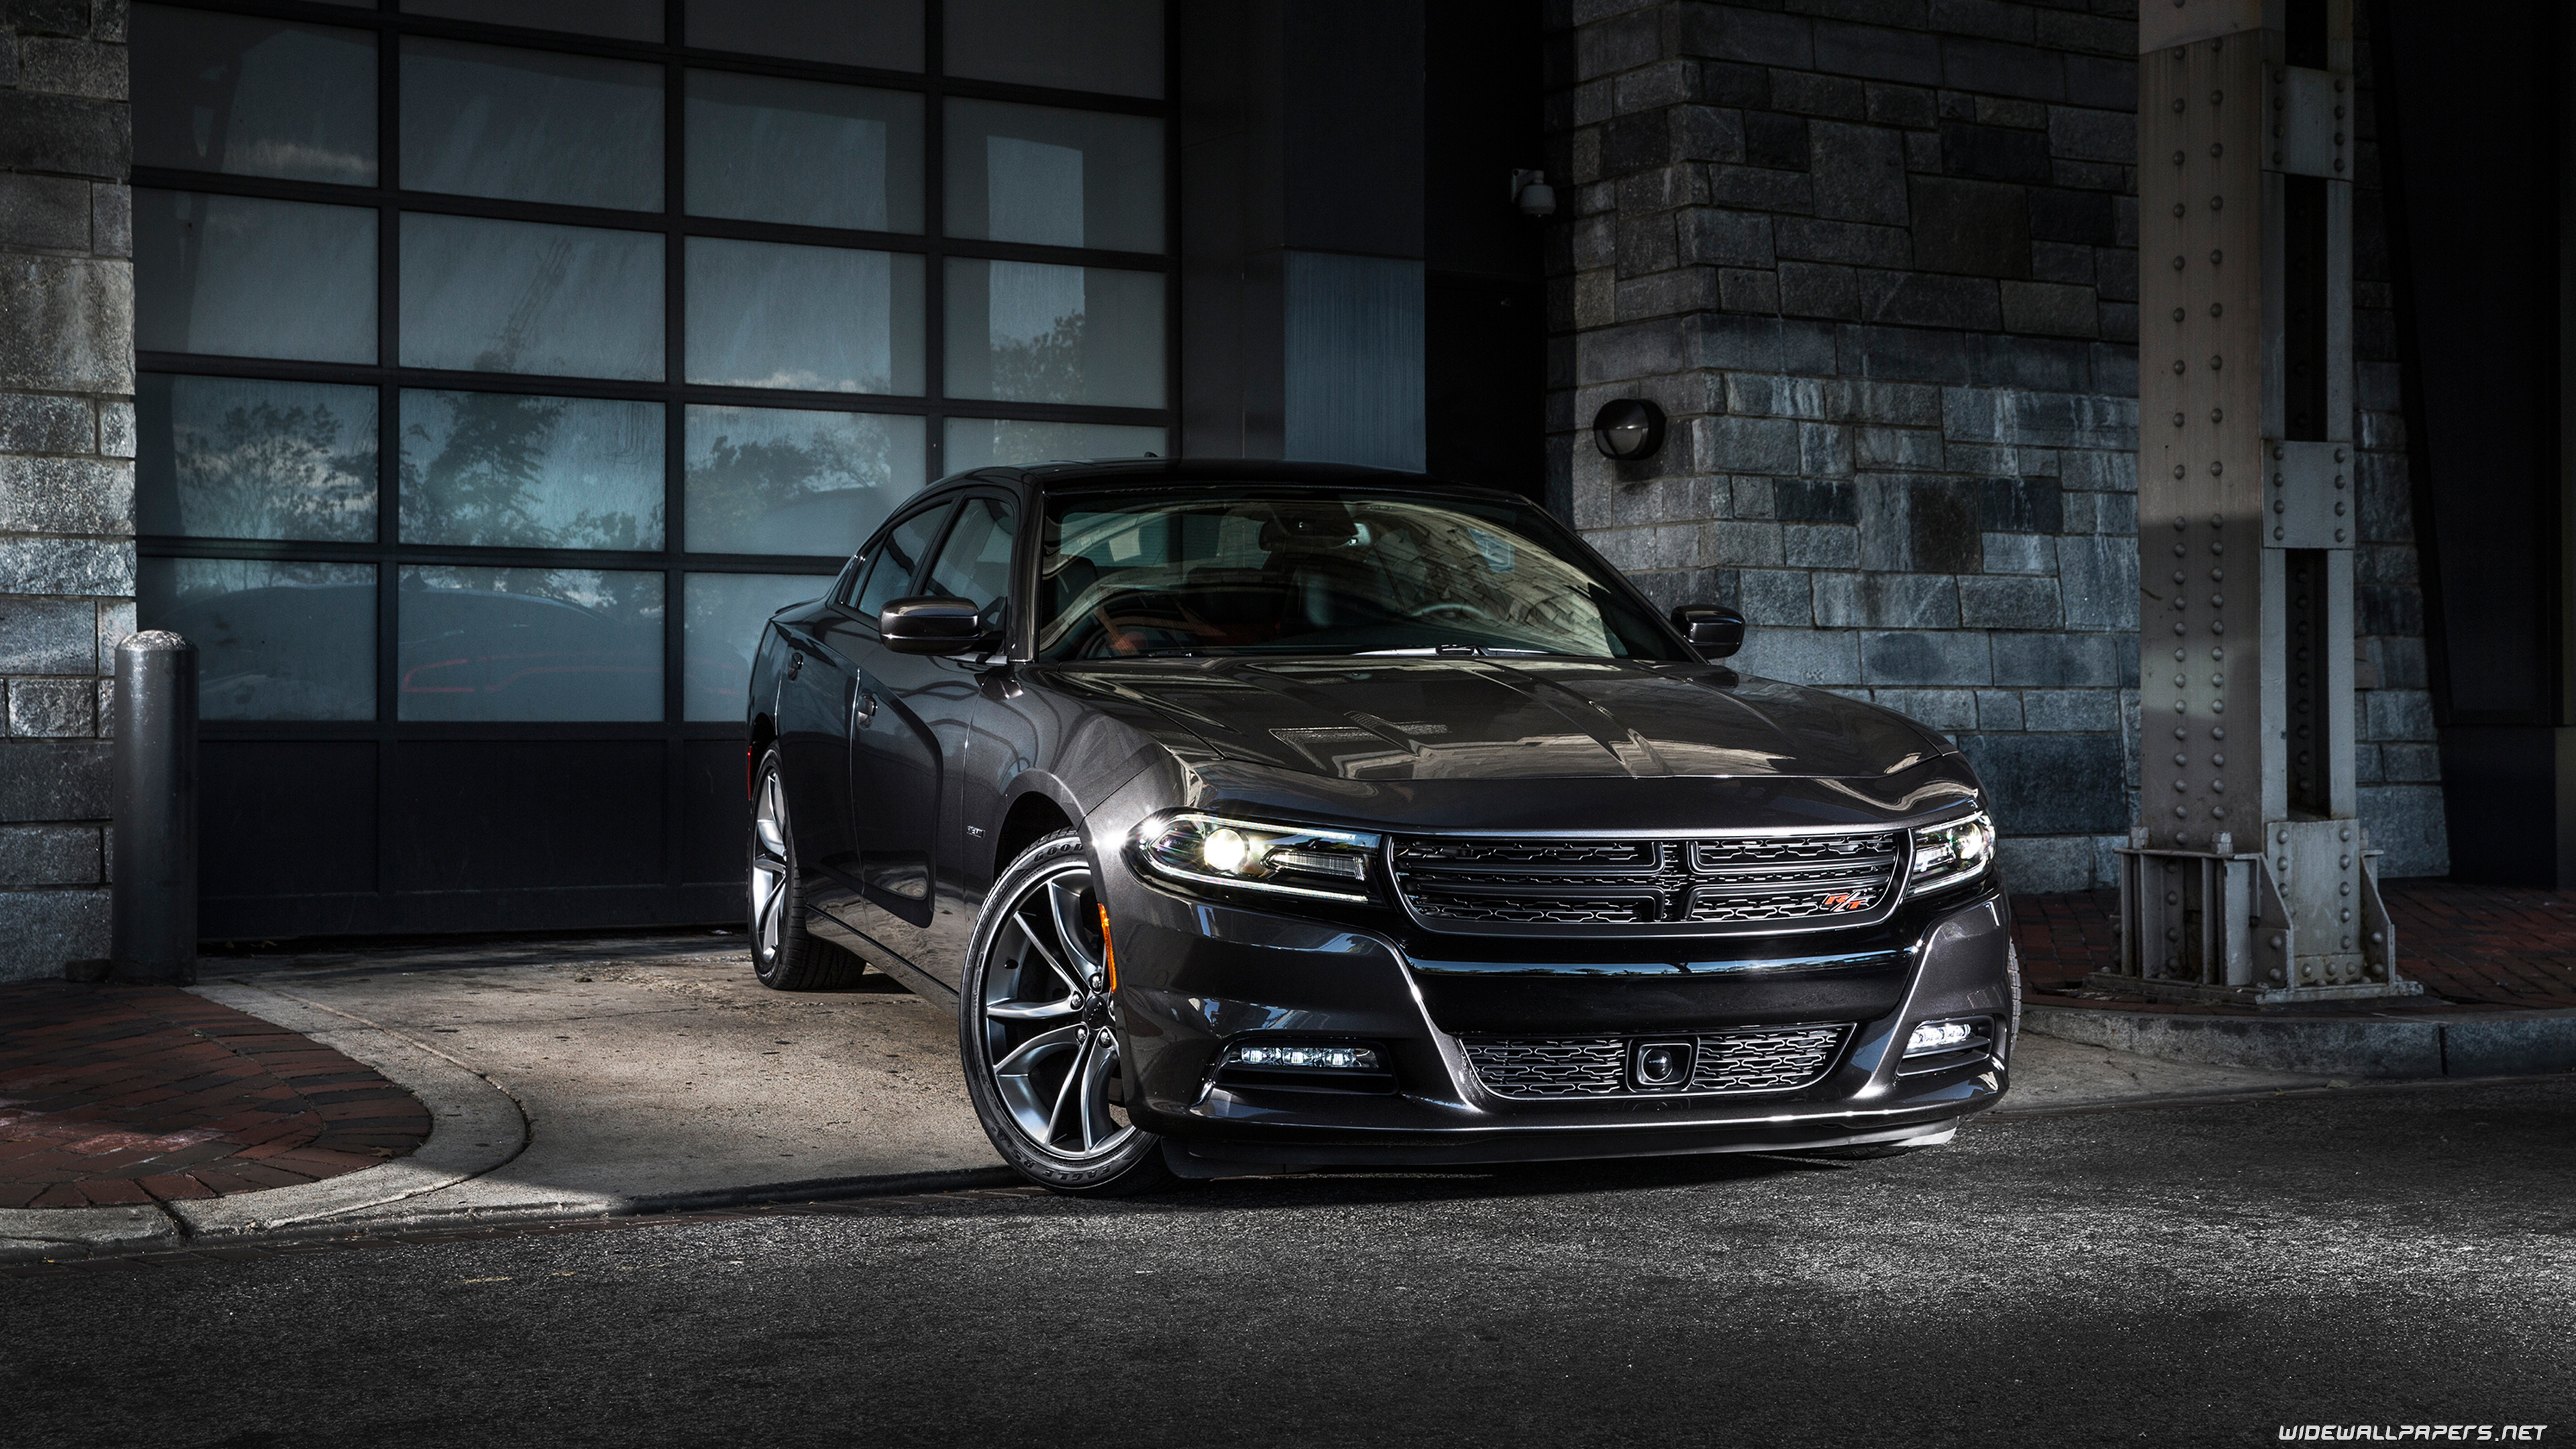 Dodge Charger Cars Desktop Wallpapers 4k Ultra Hd Page 2